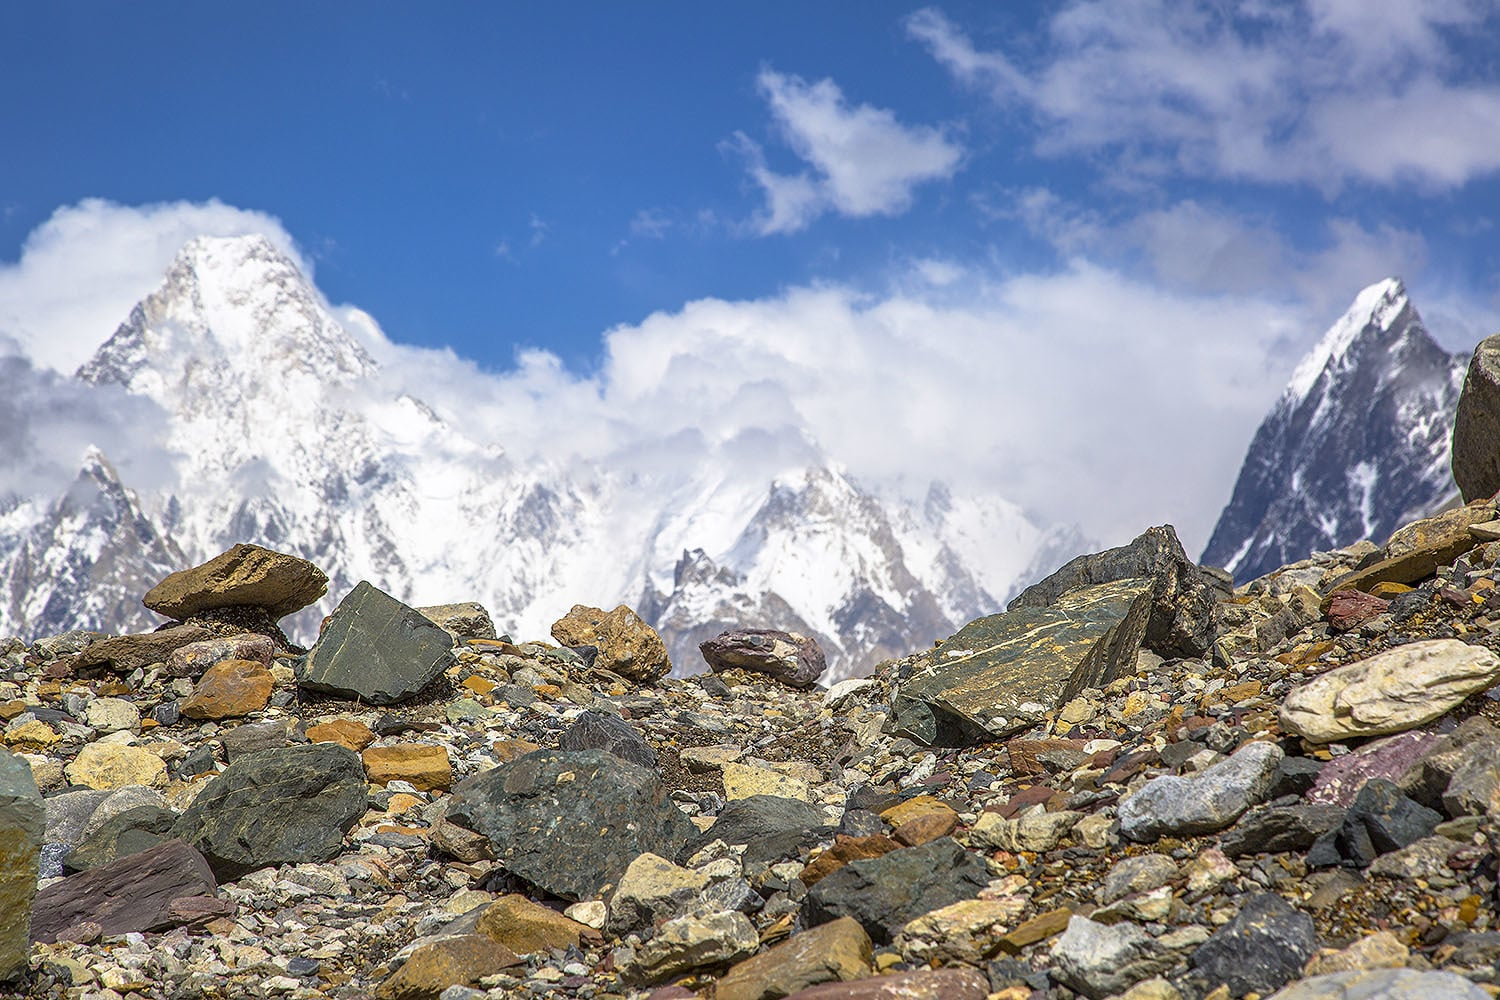 Our first view of Gasherbrum-4 as we climb up the valley.